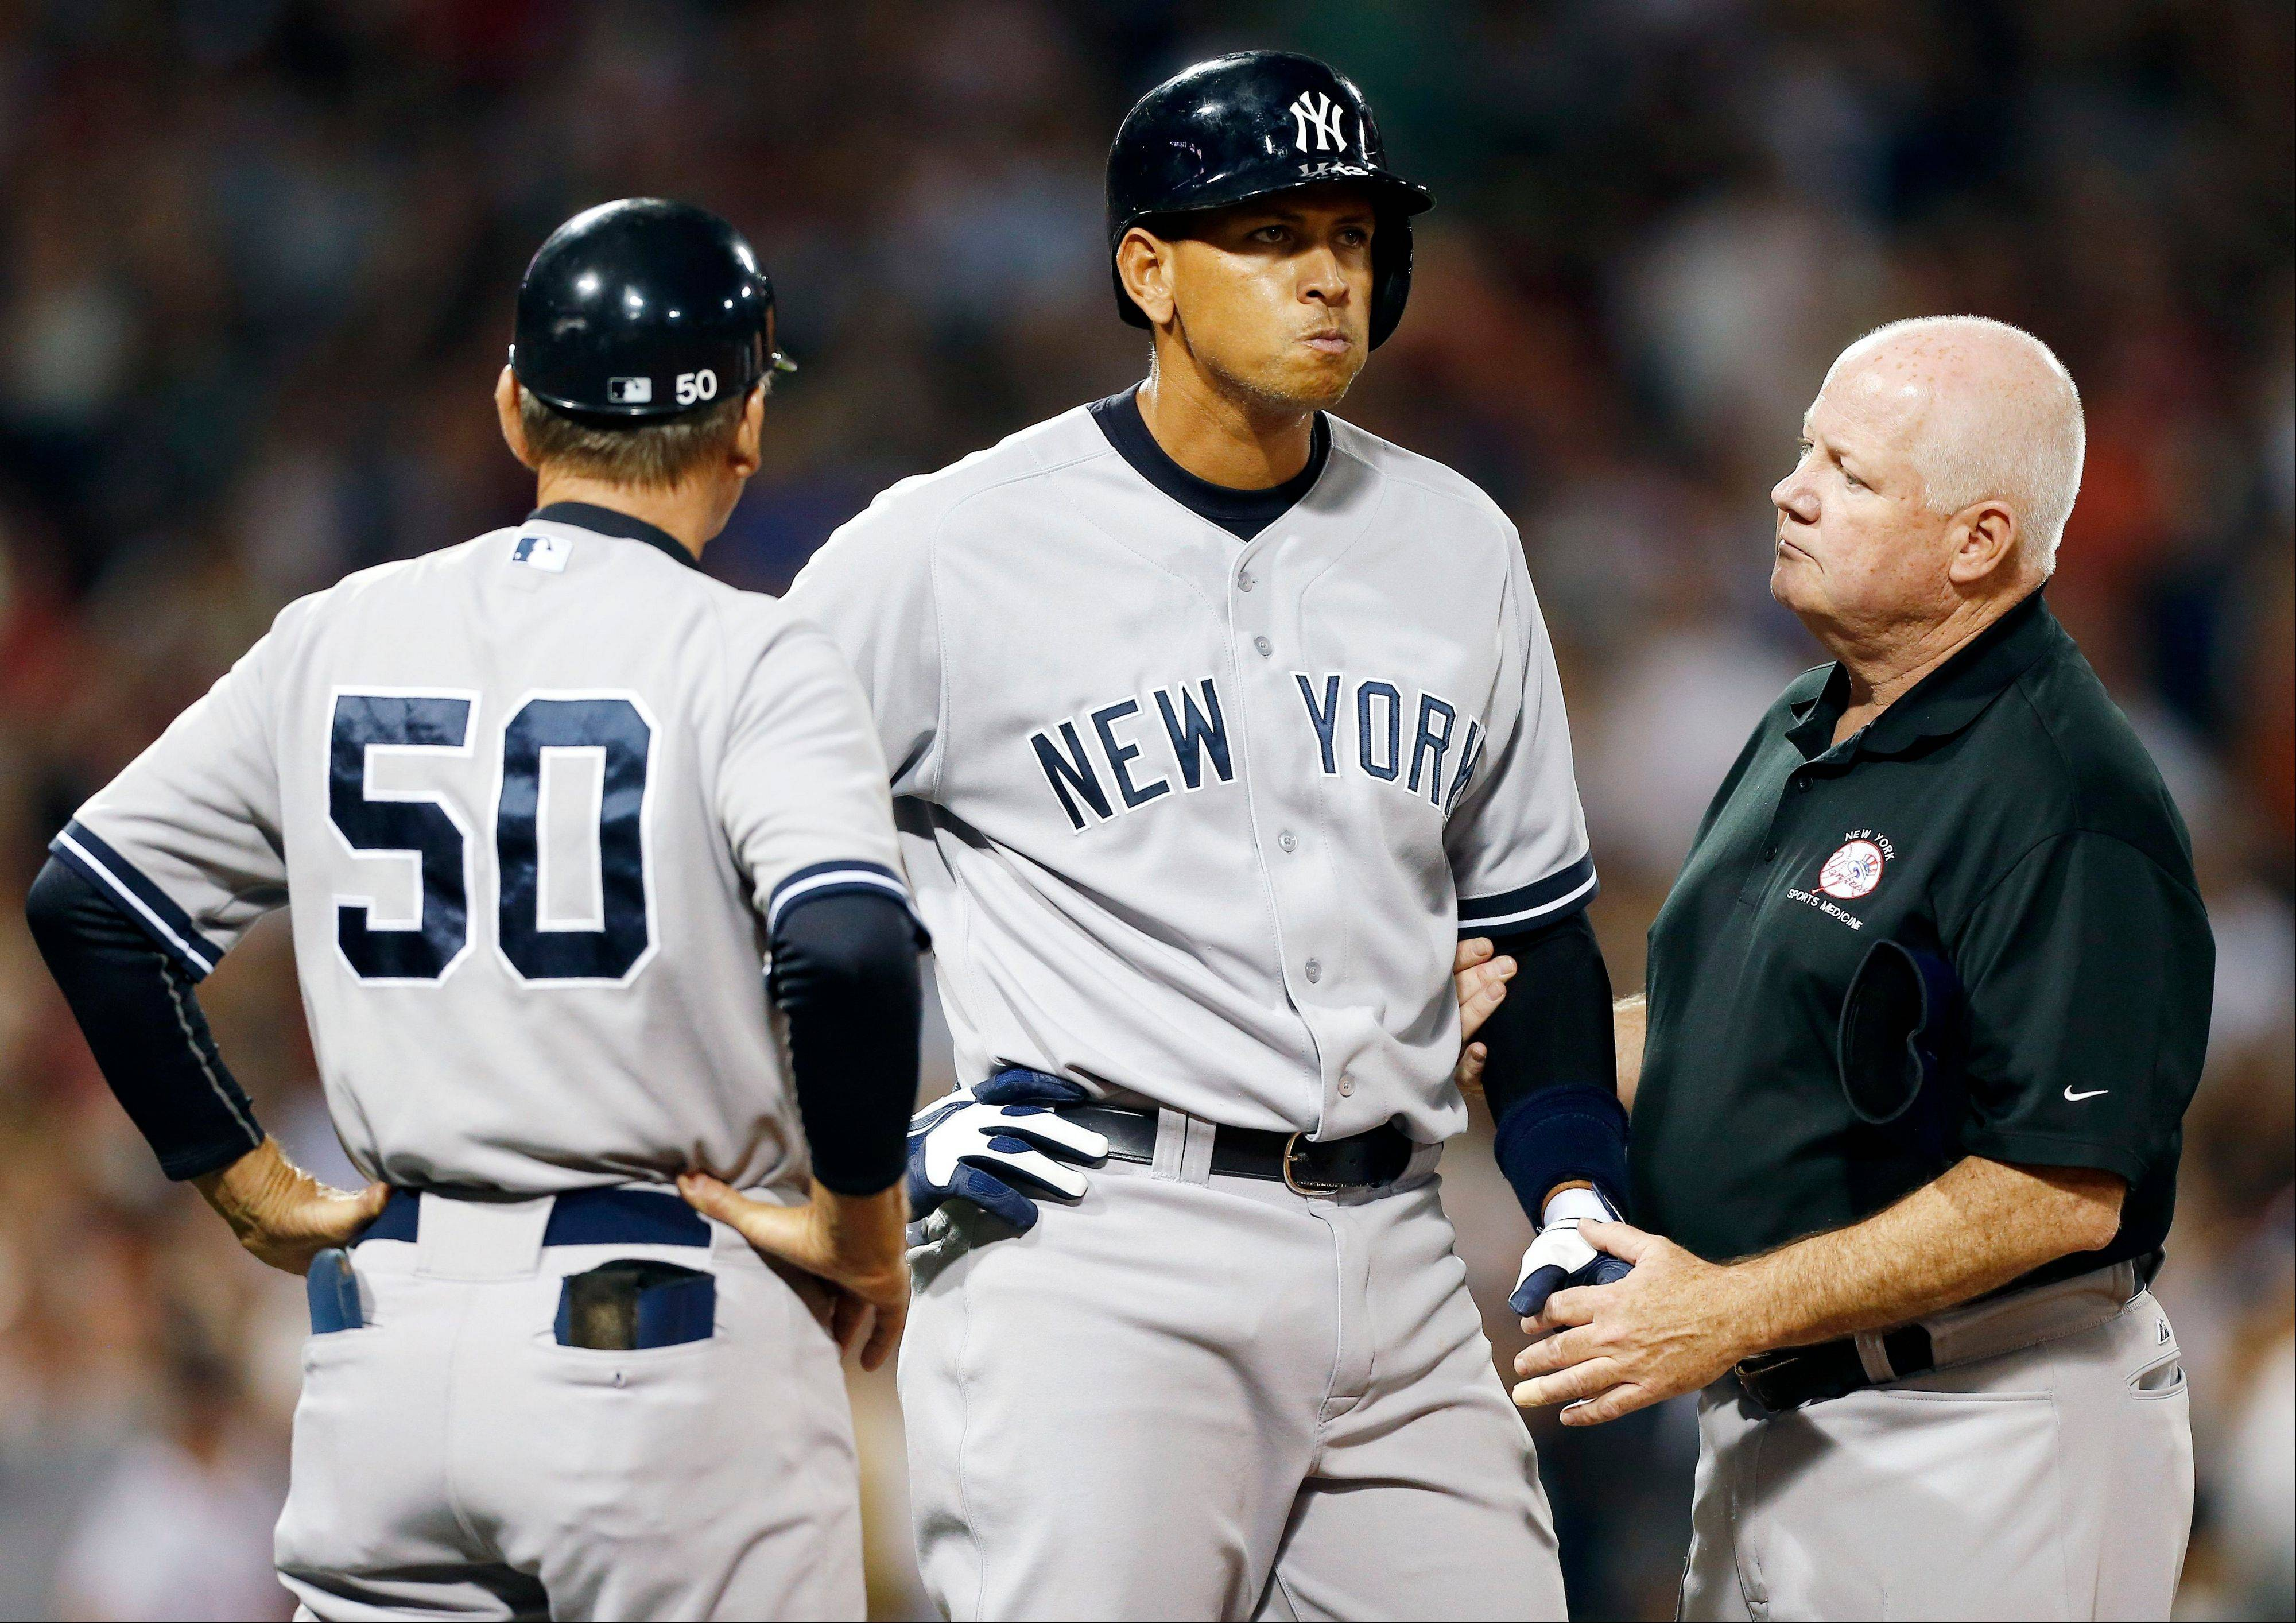 New York Yankees' Alex Rodriguez, center, is tended to by a trainer after being hit by a fastball from Boston starter Ryan Dempster.